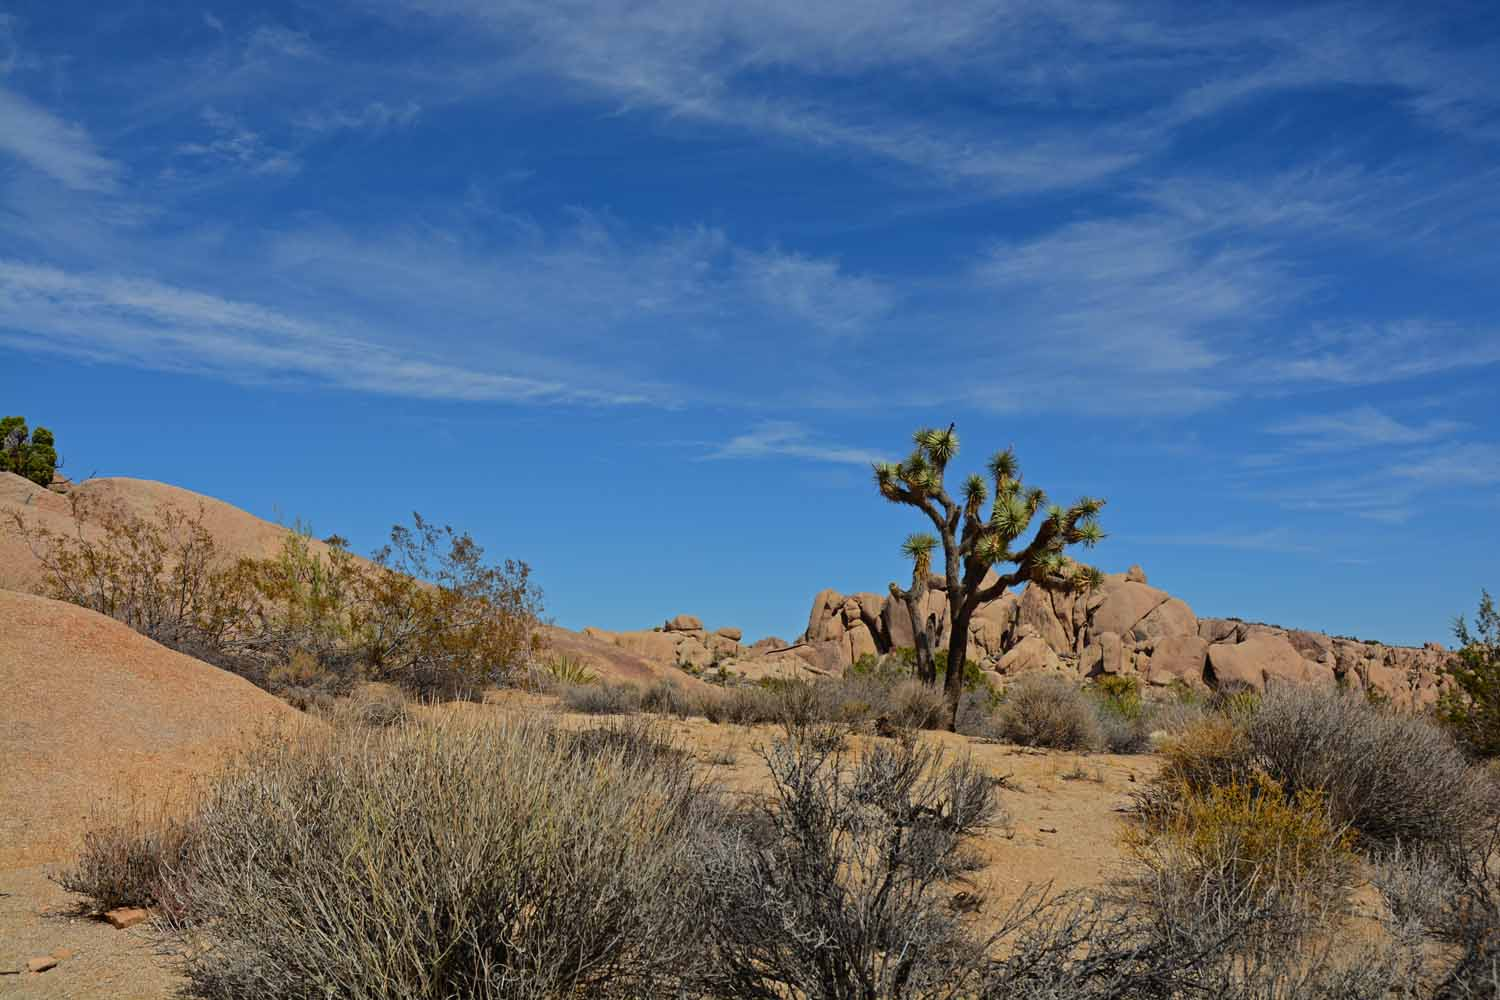 Had to shoot this Joshua Tree against the blue sky.